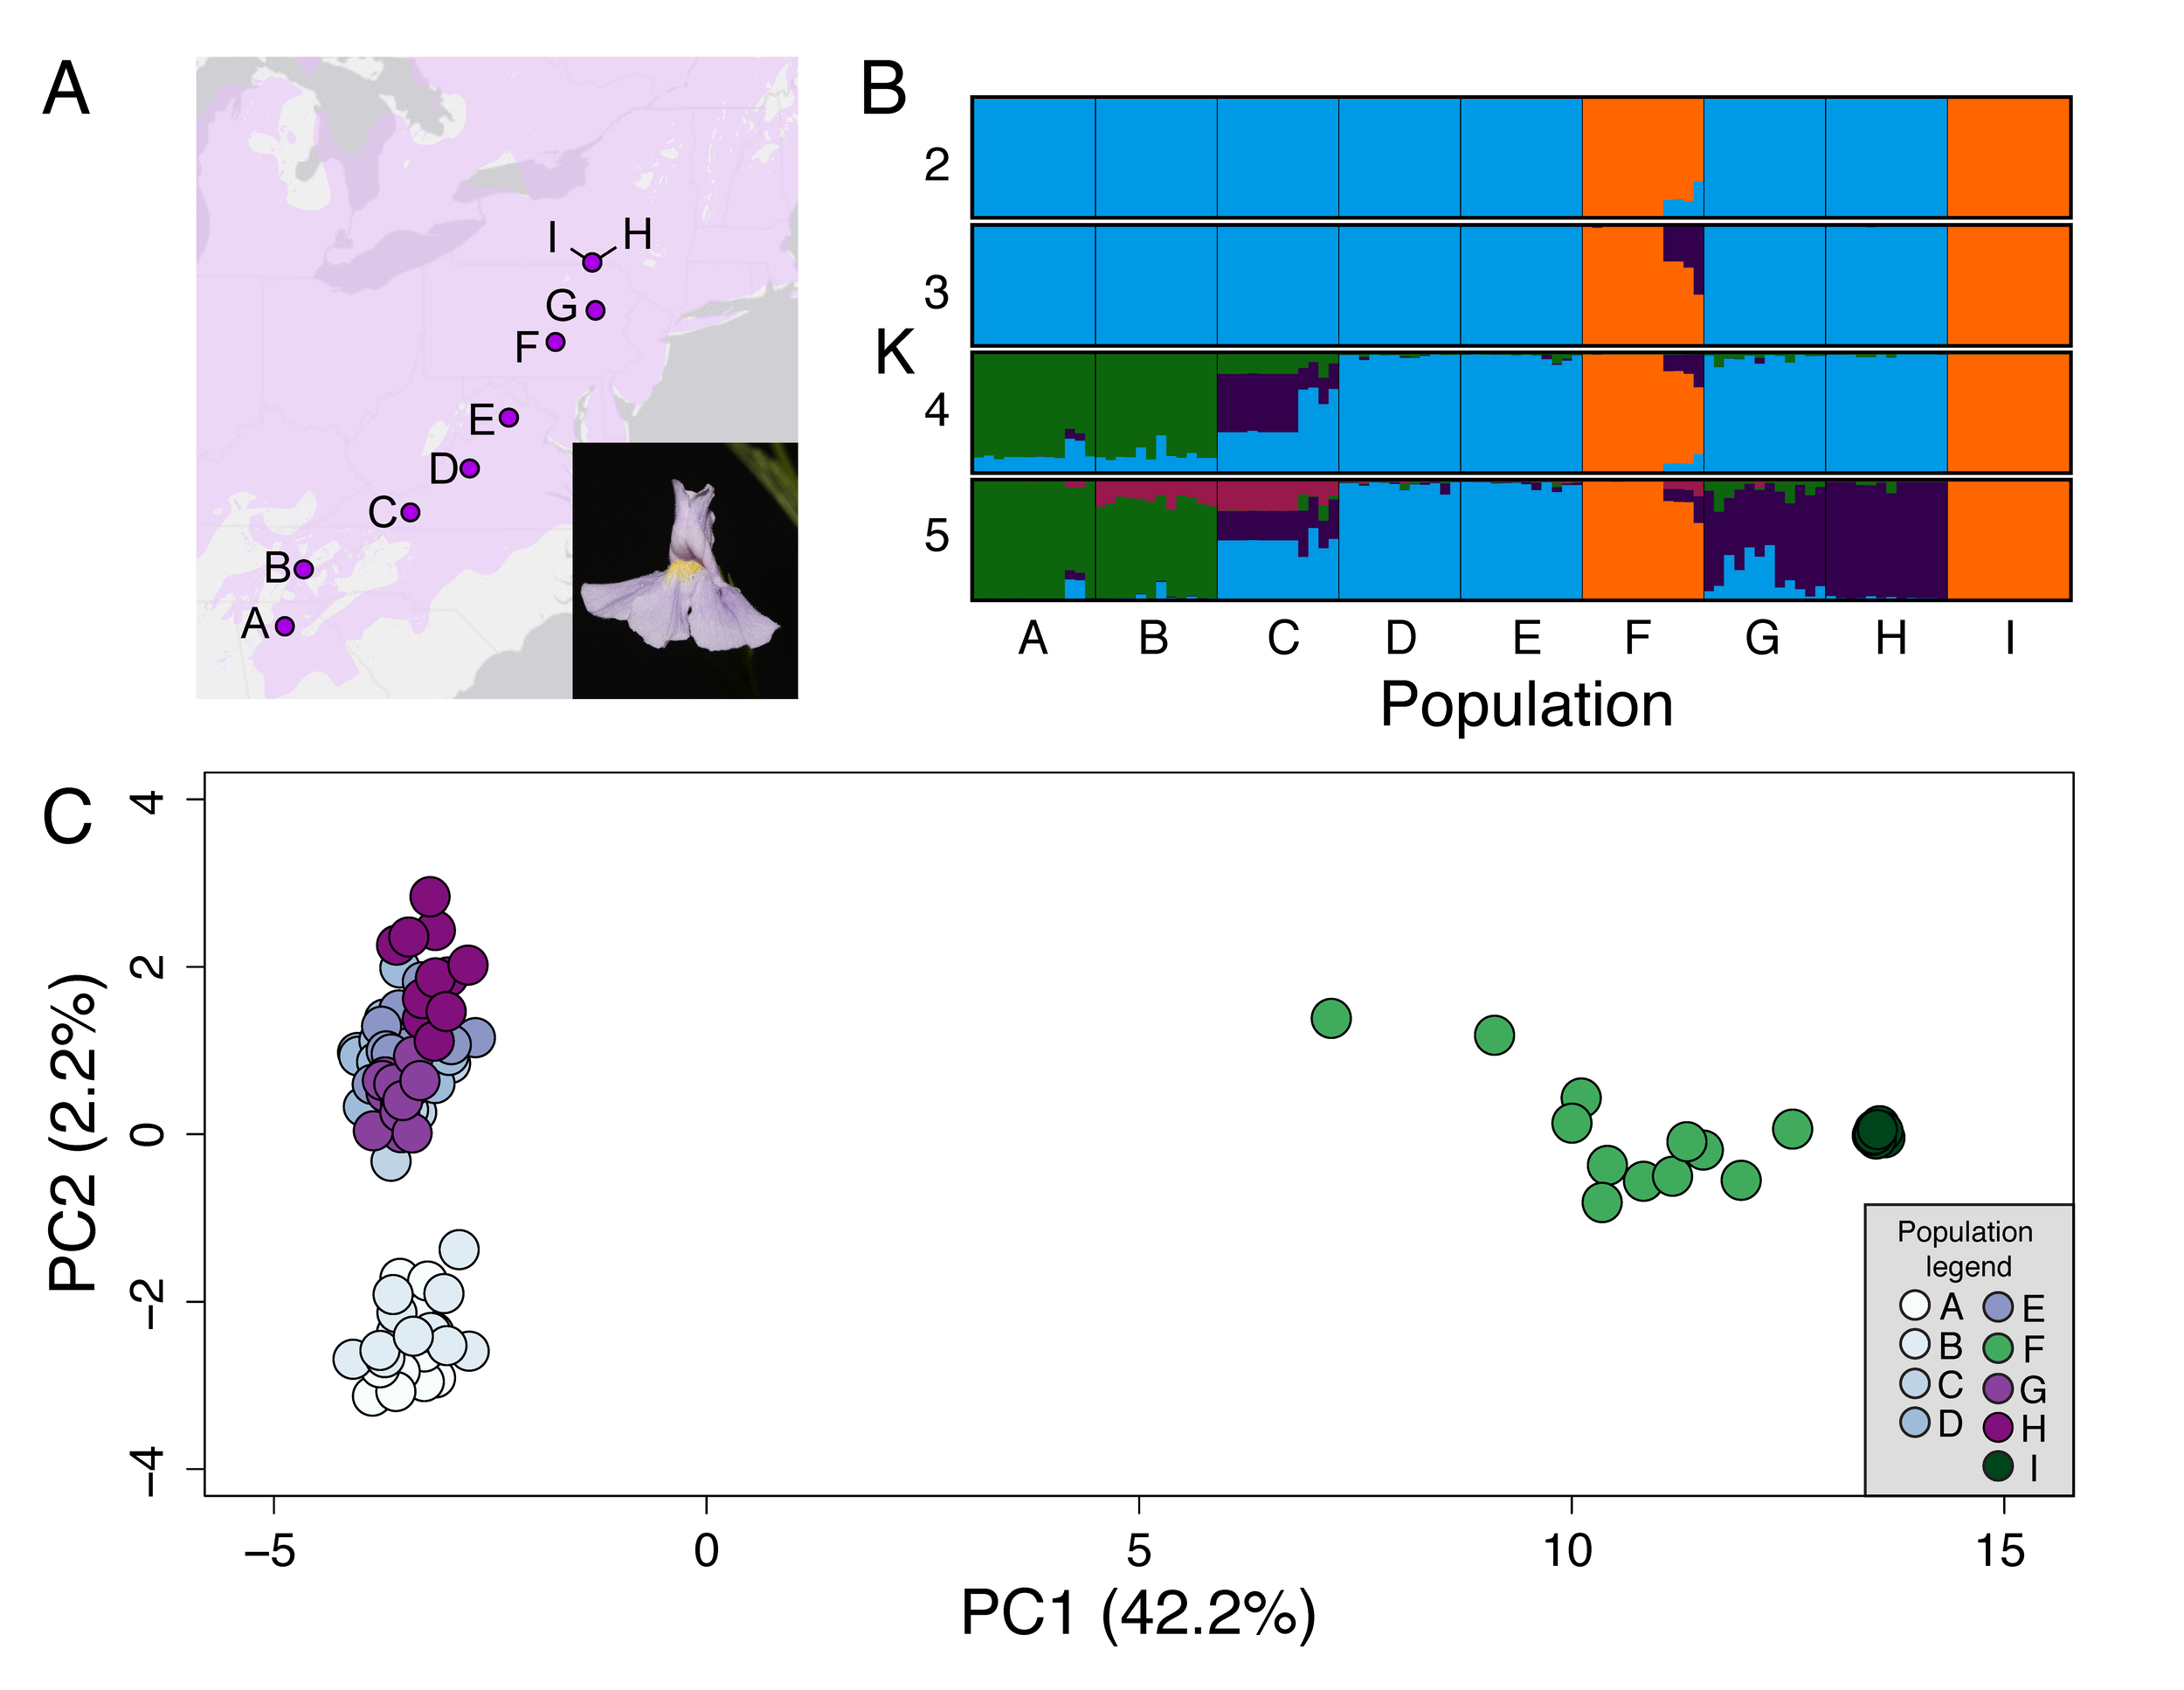 Cryptic life history diversity in  M. ringens . A) A series of 9 populations spanning a wide range of latitude are represented by populations A-I. Variation in response to flowering time and population genomic structure (STRUCTURE plot in panel B and PCA in panel C) suggest that populations F and I are an 'annual-like' transition in life history from the typically perennial species.